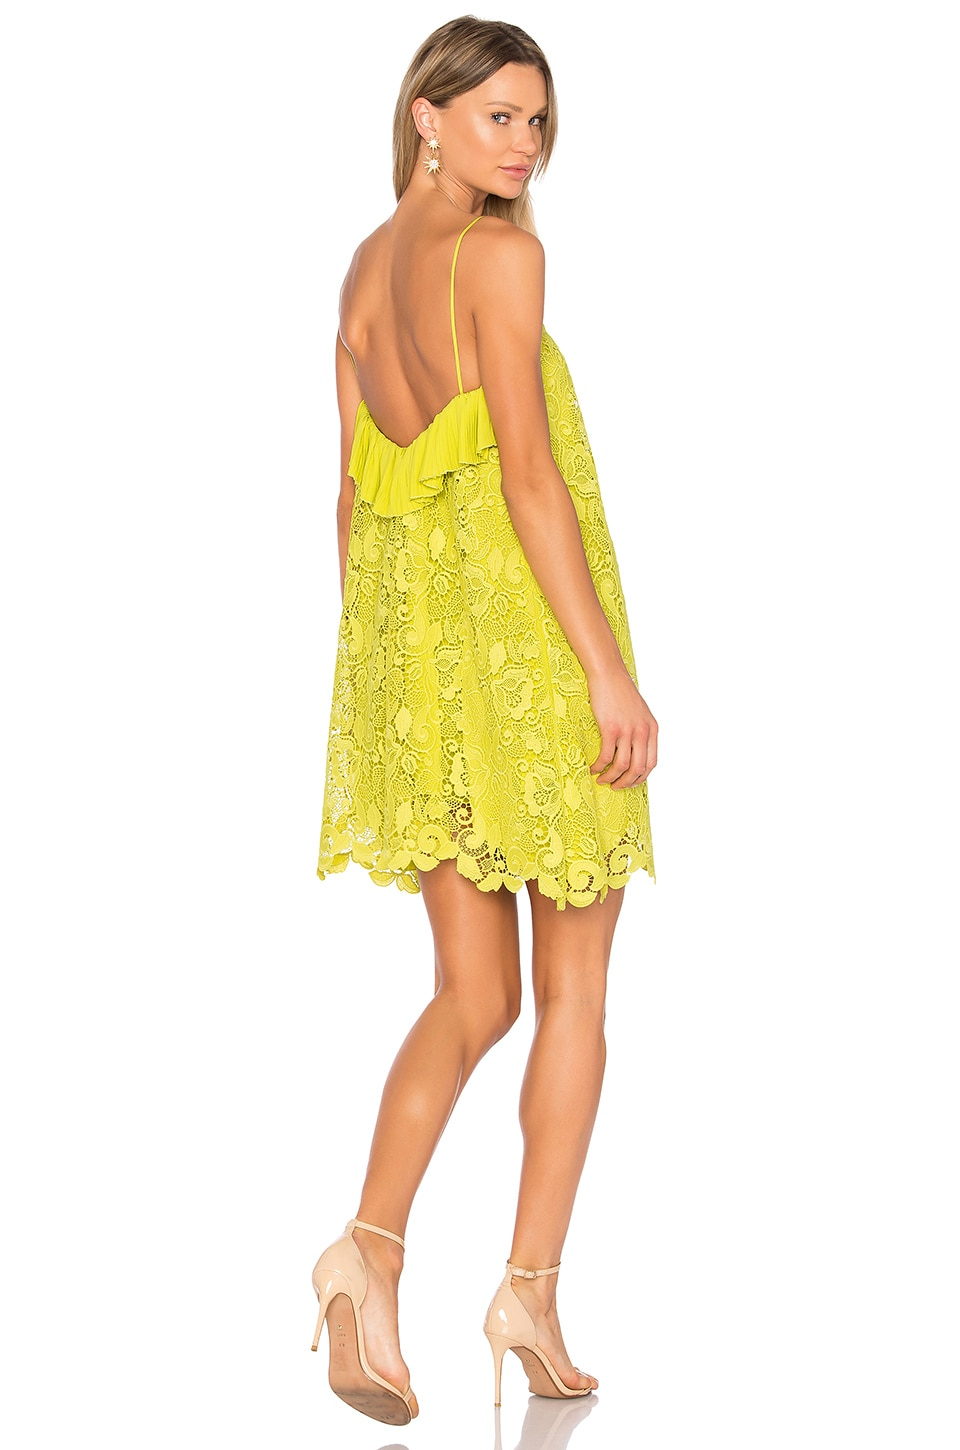 No. 21 Lace Dress in Yellow